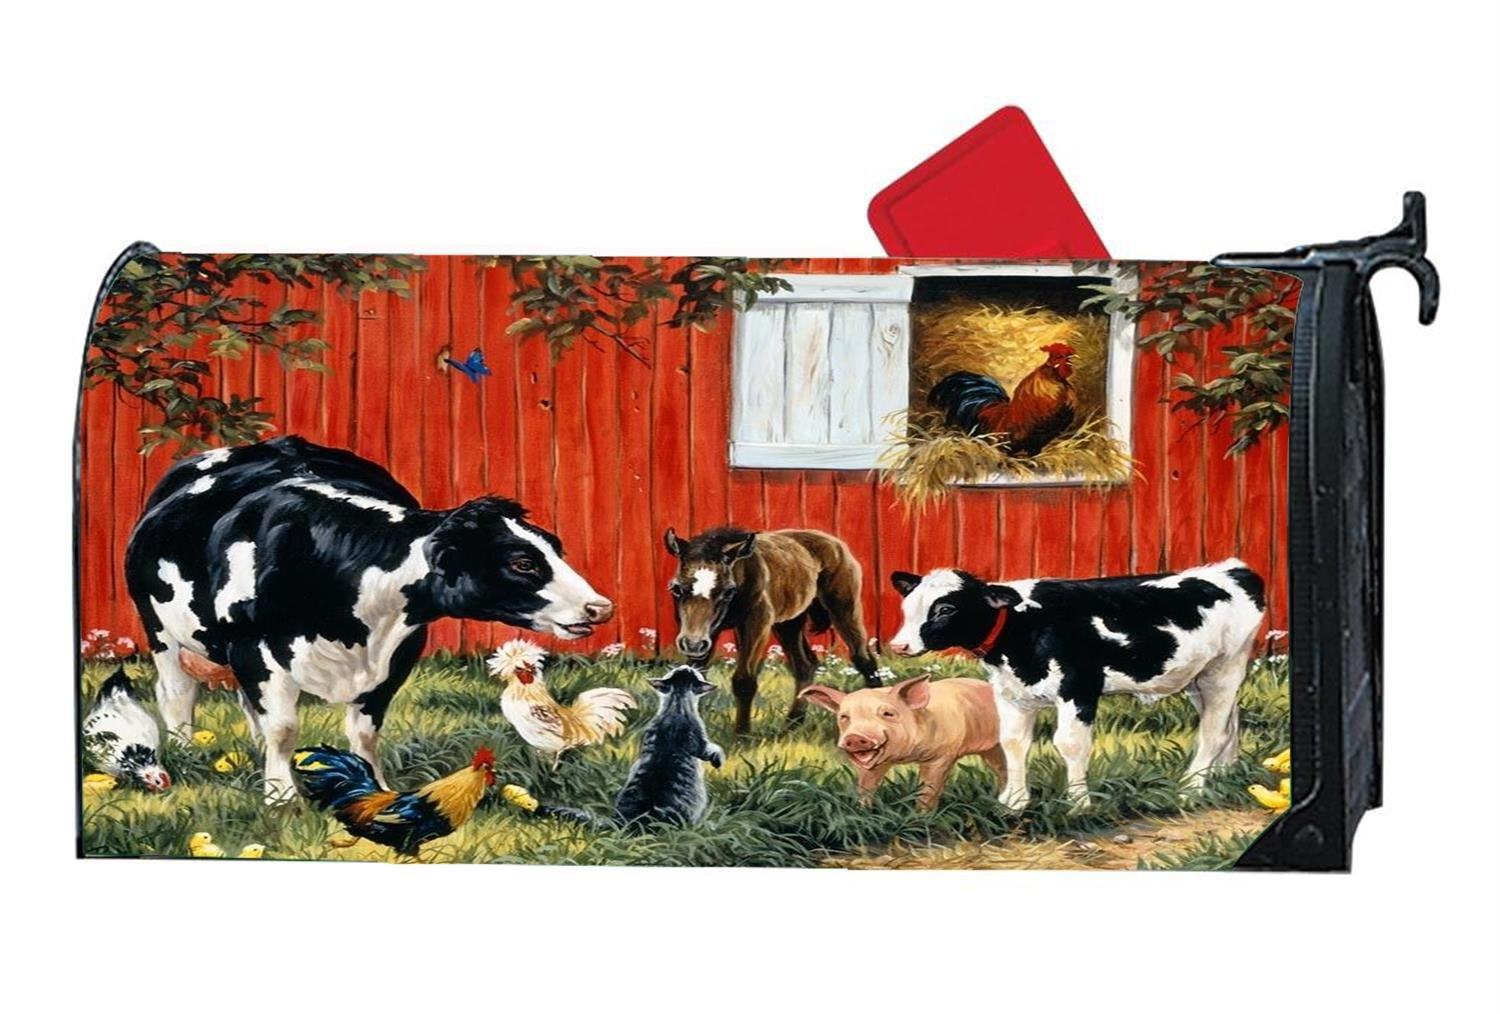 Farm Animals Cow Cock Customized Magnetic Mailbox Cover Home Garden Cute MailBox Wraps Vinyl with Full-surface Magnet On Back by CoolMailboxicoveriw